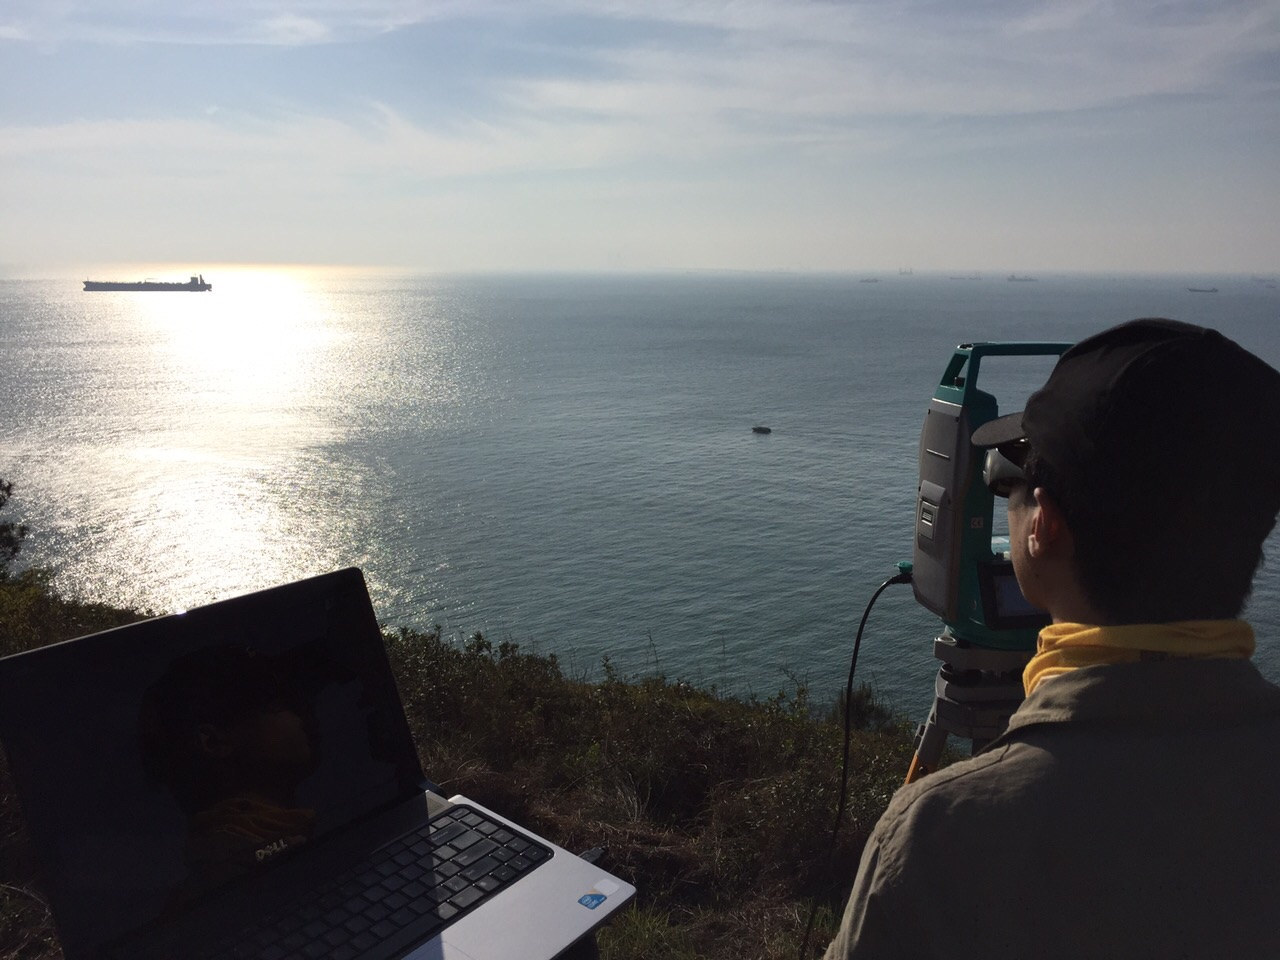 Field work in Tai O Peninsula